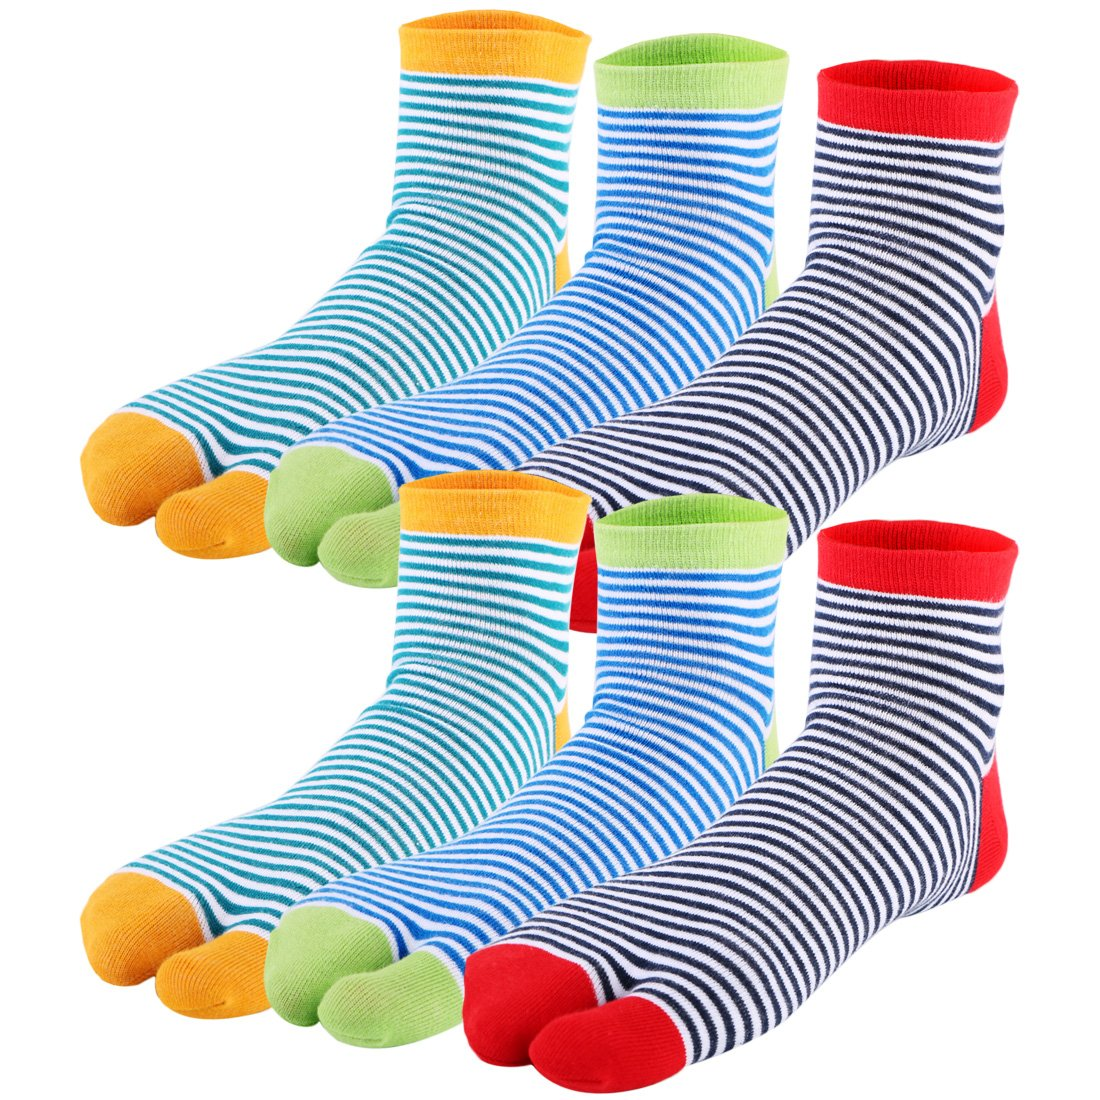 kilofly 6 Pairs Unisex Striped Flip Flop Split 2-Toe Tabi Socks Value Pack FTW518set6